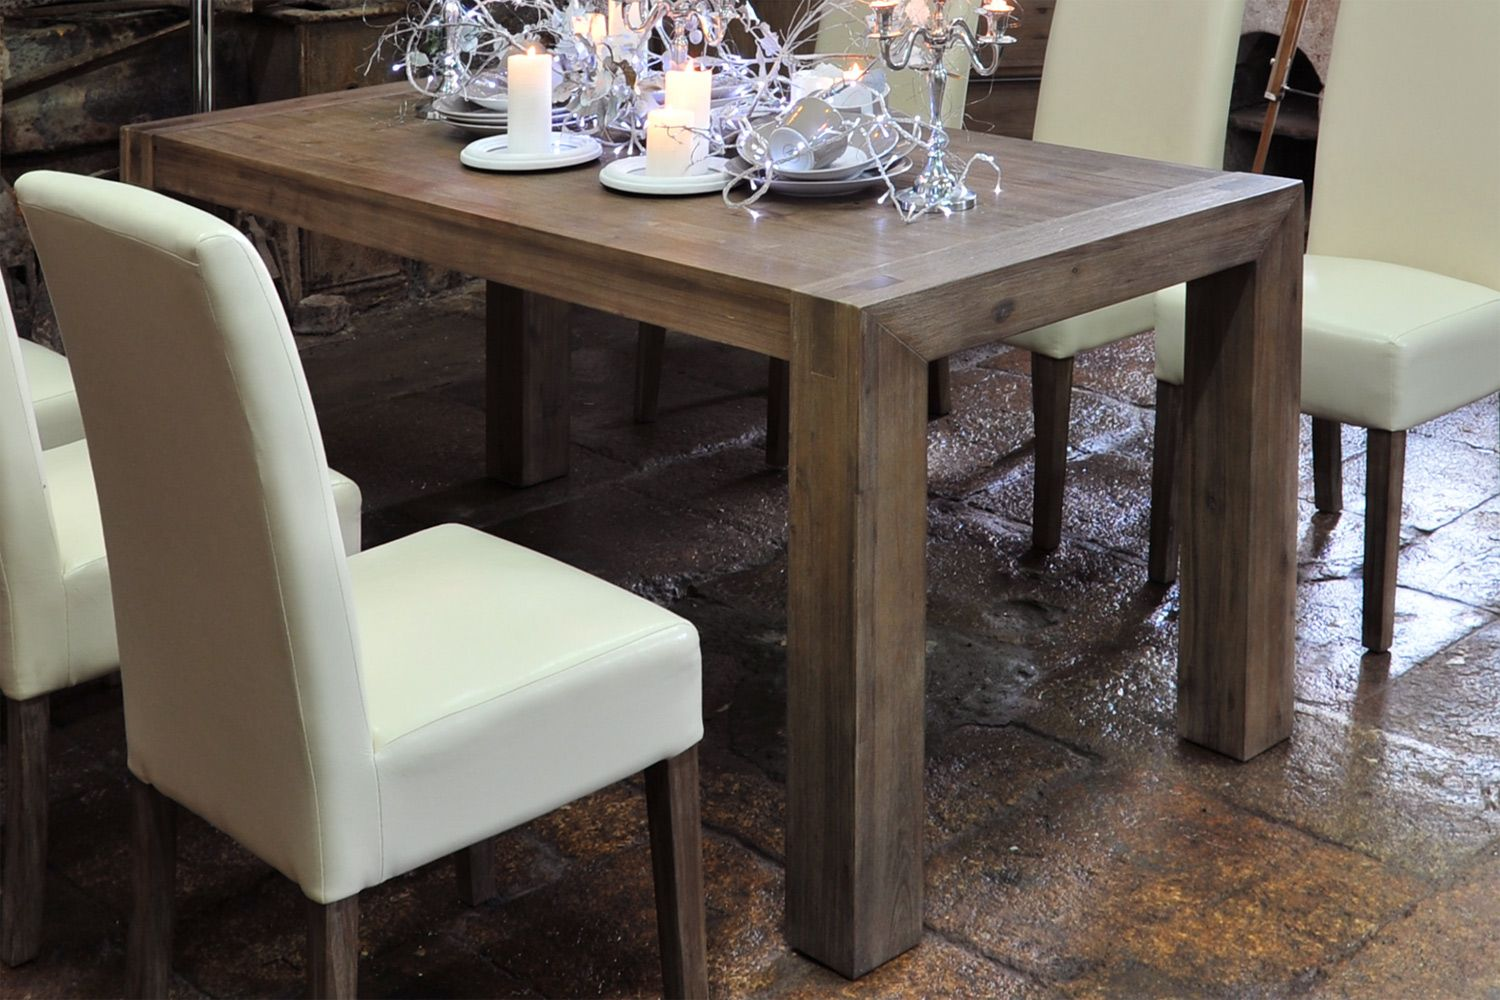 Hamburg Dining Table 180 X 90cm From Harvey Norman Ireland Dining Table Dining Furniture Rustic Dining Table